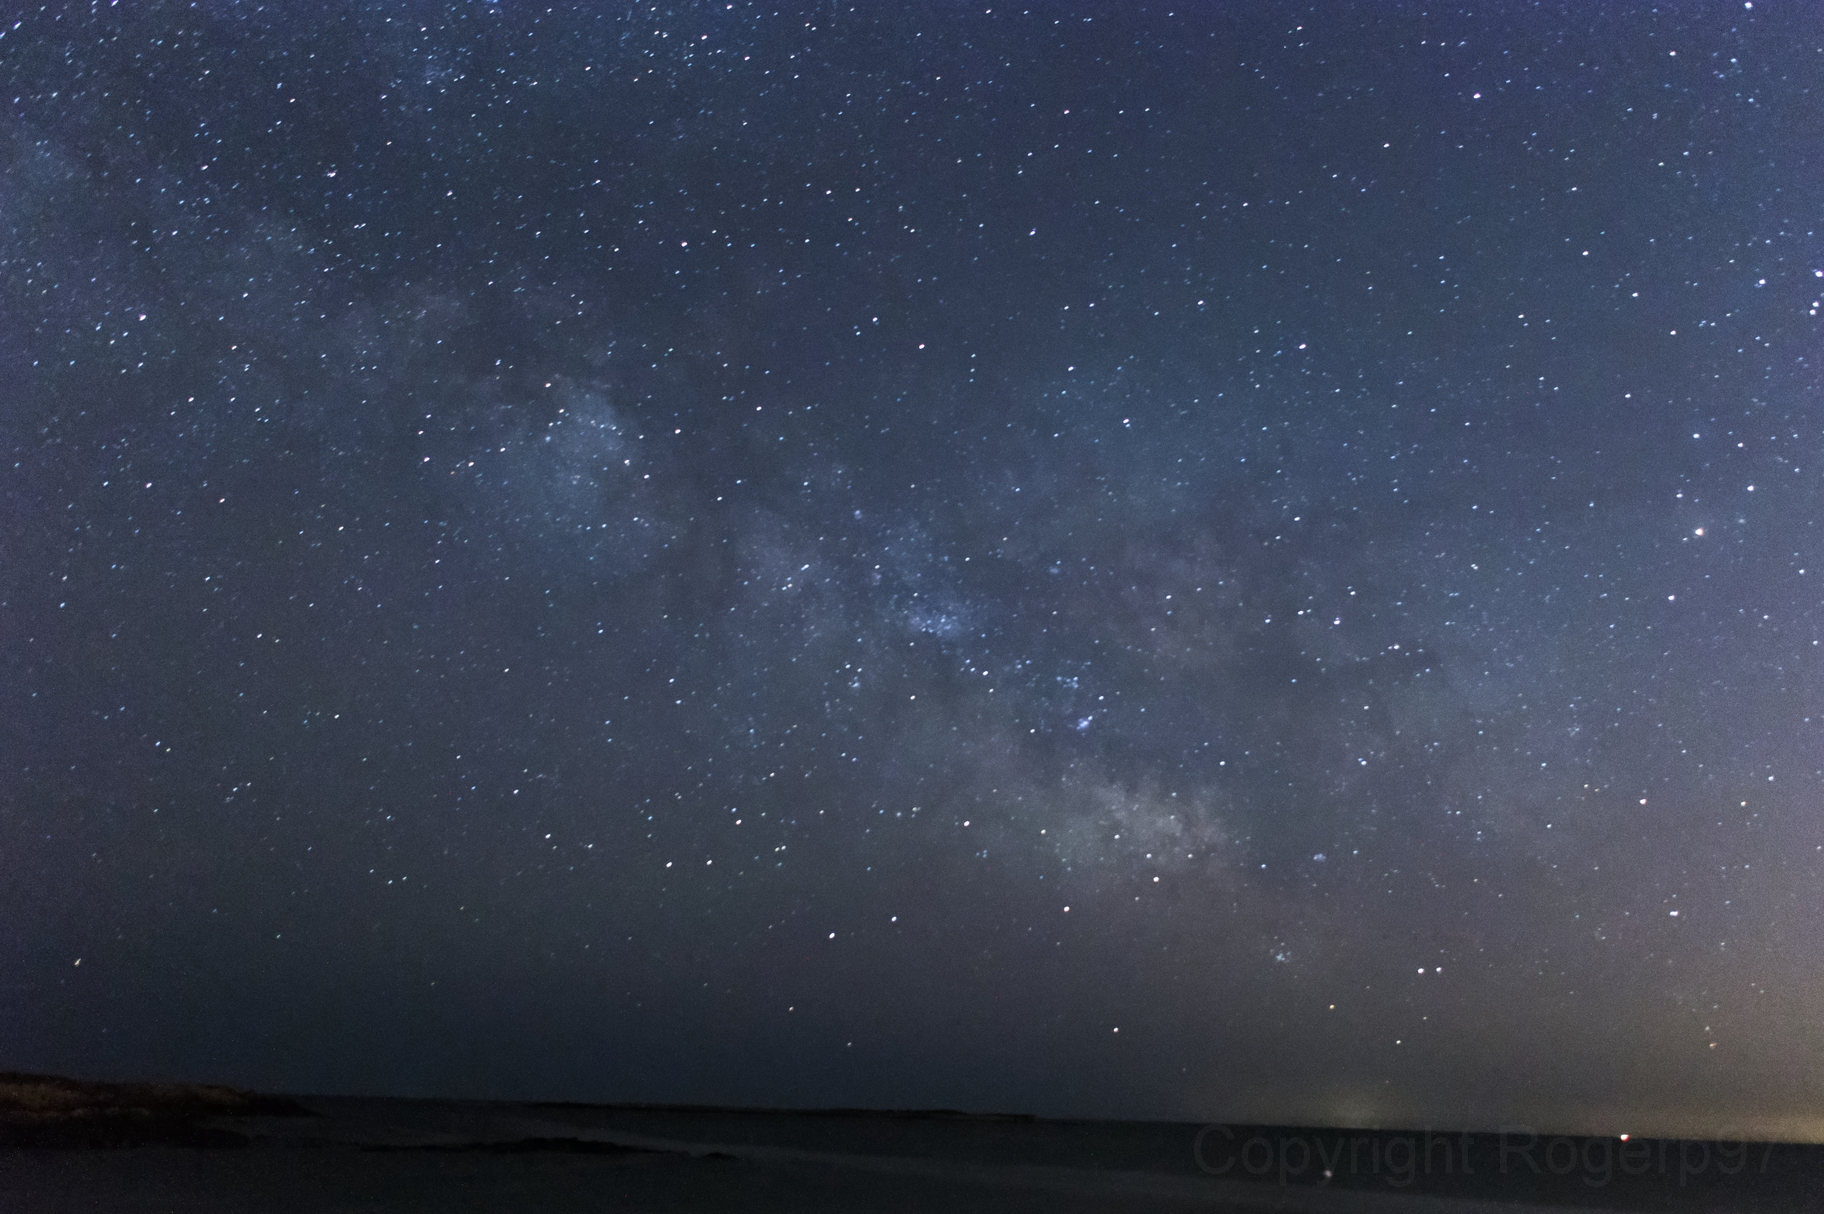 Milky Way over Pebble Beach